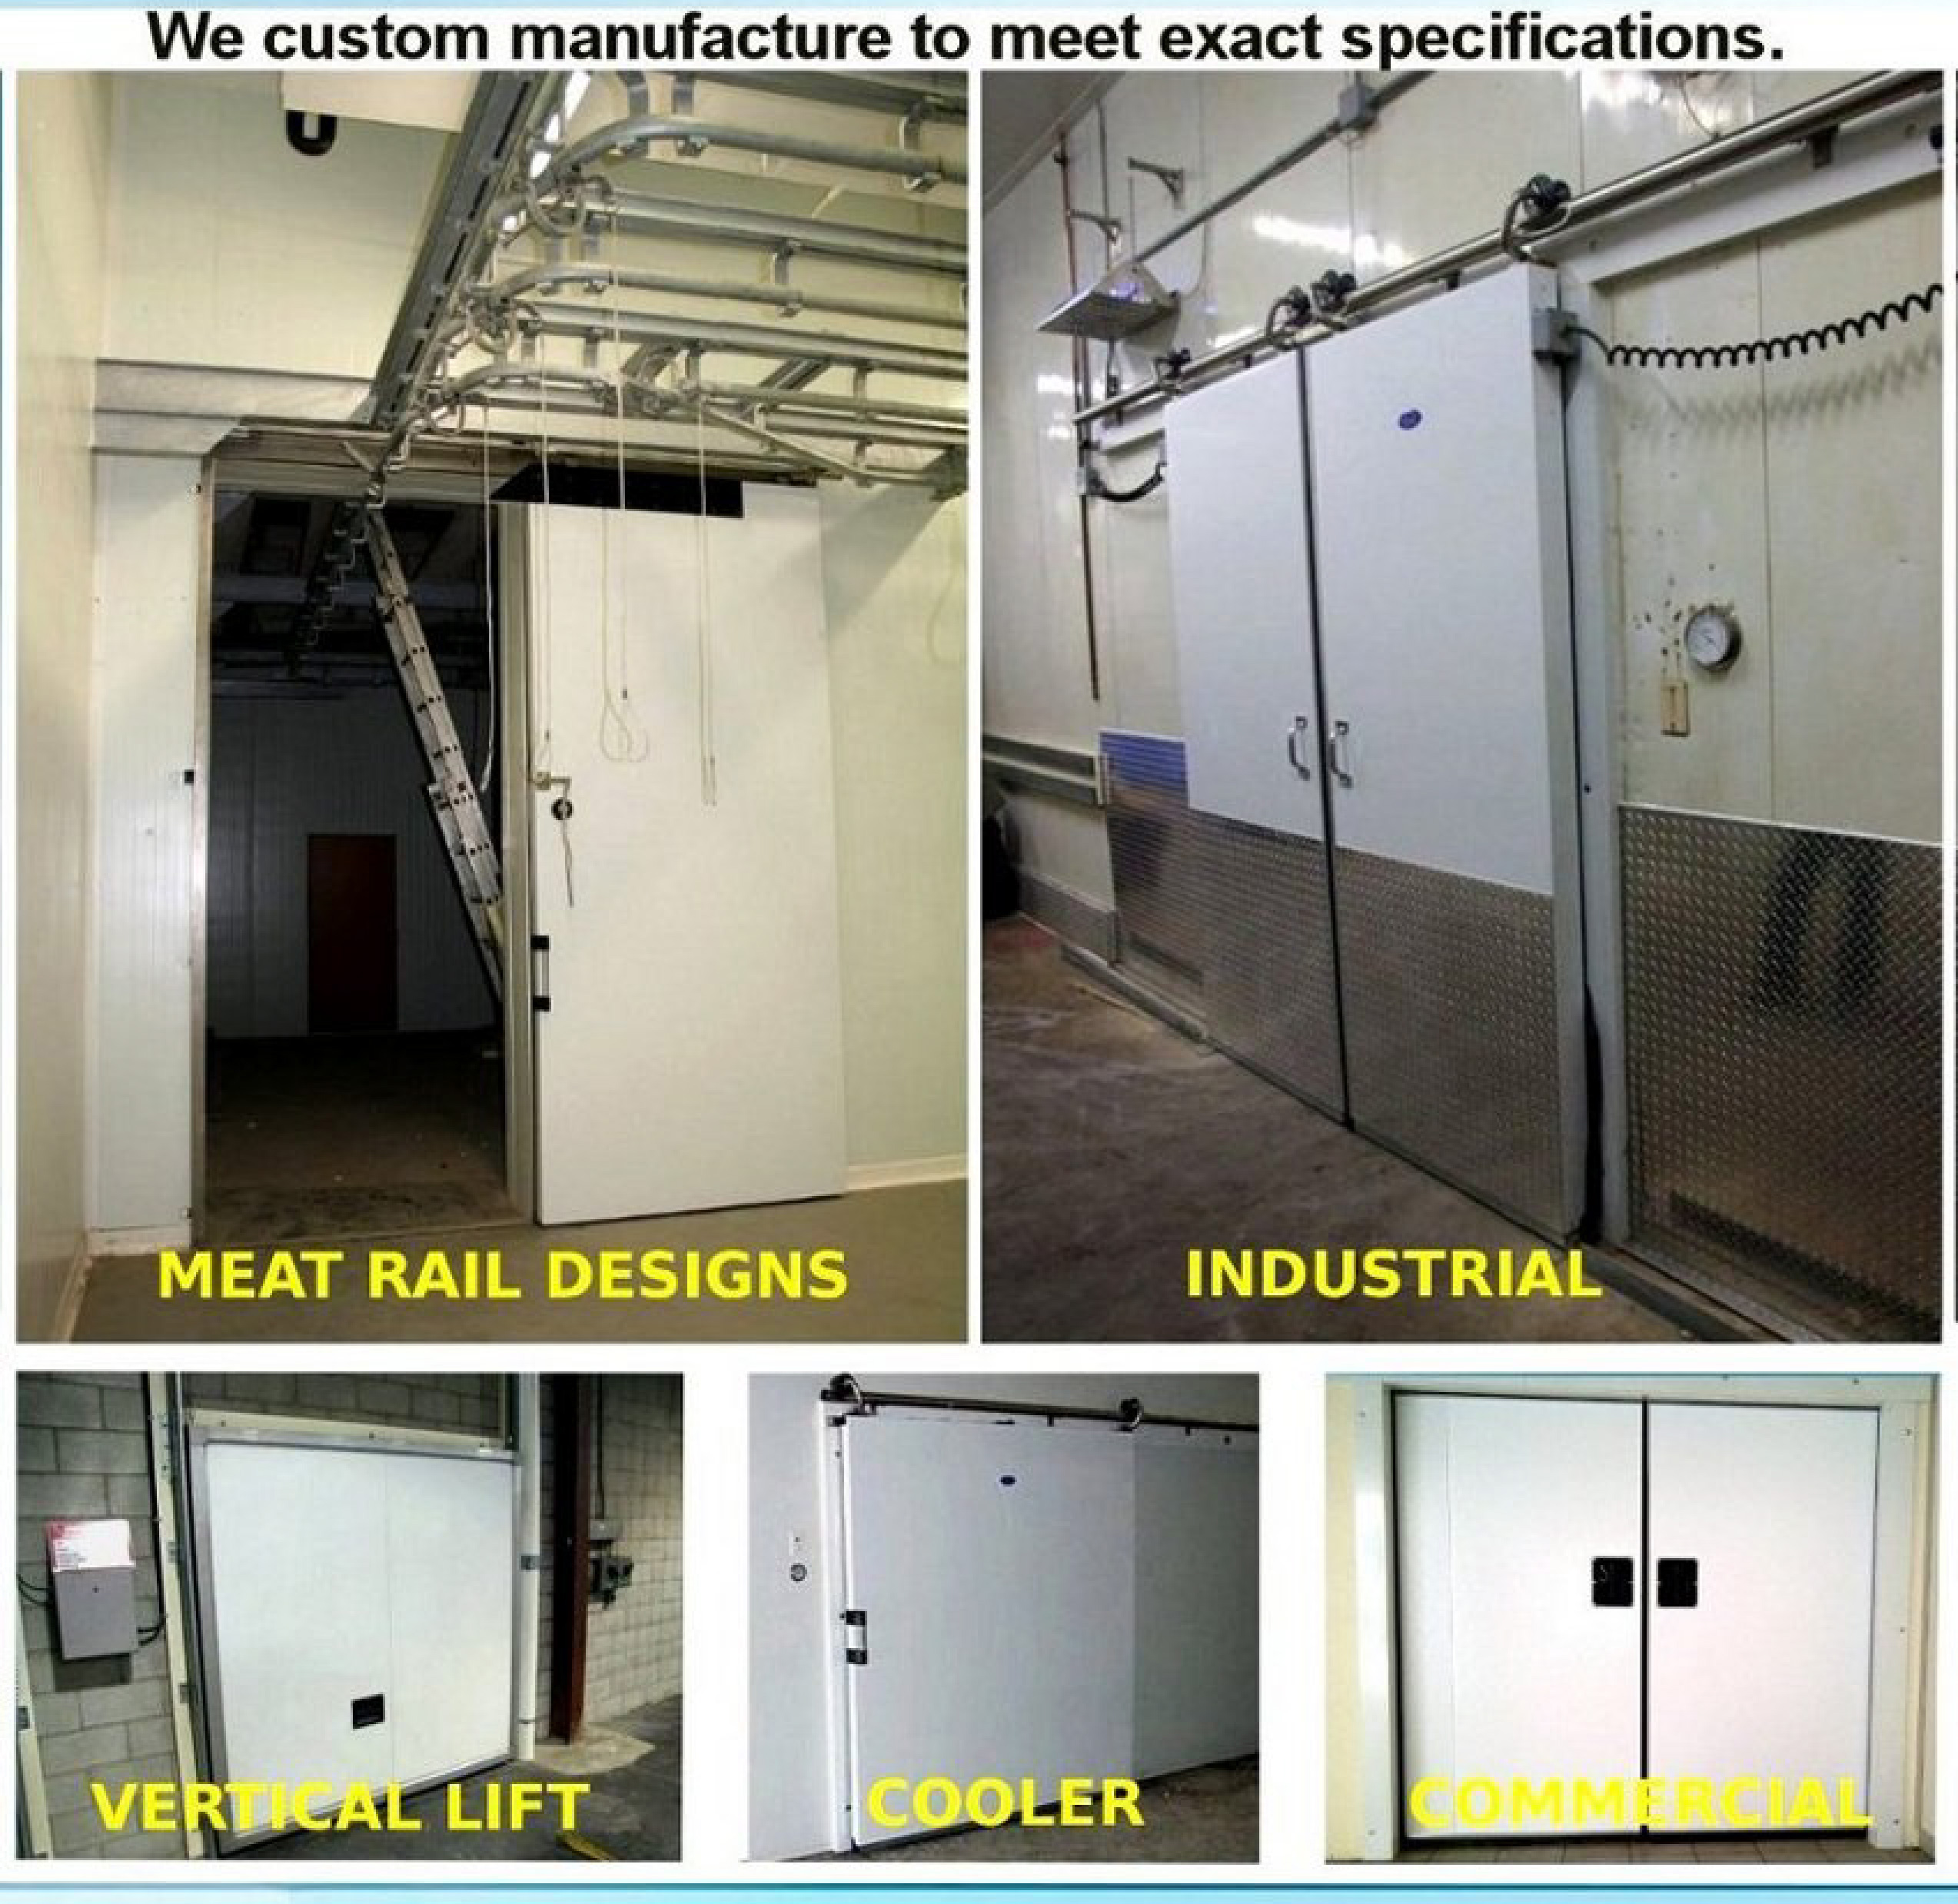 Custom Manufacture to meet exact specifications